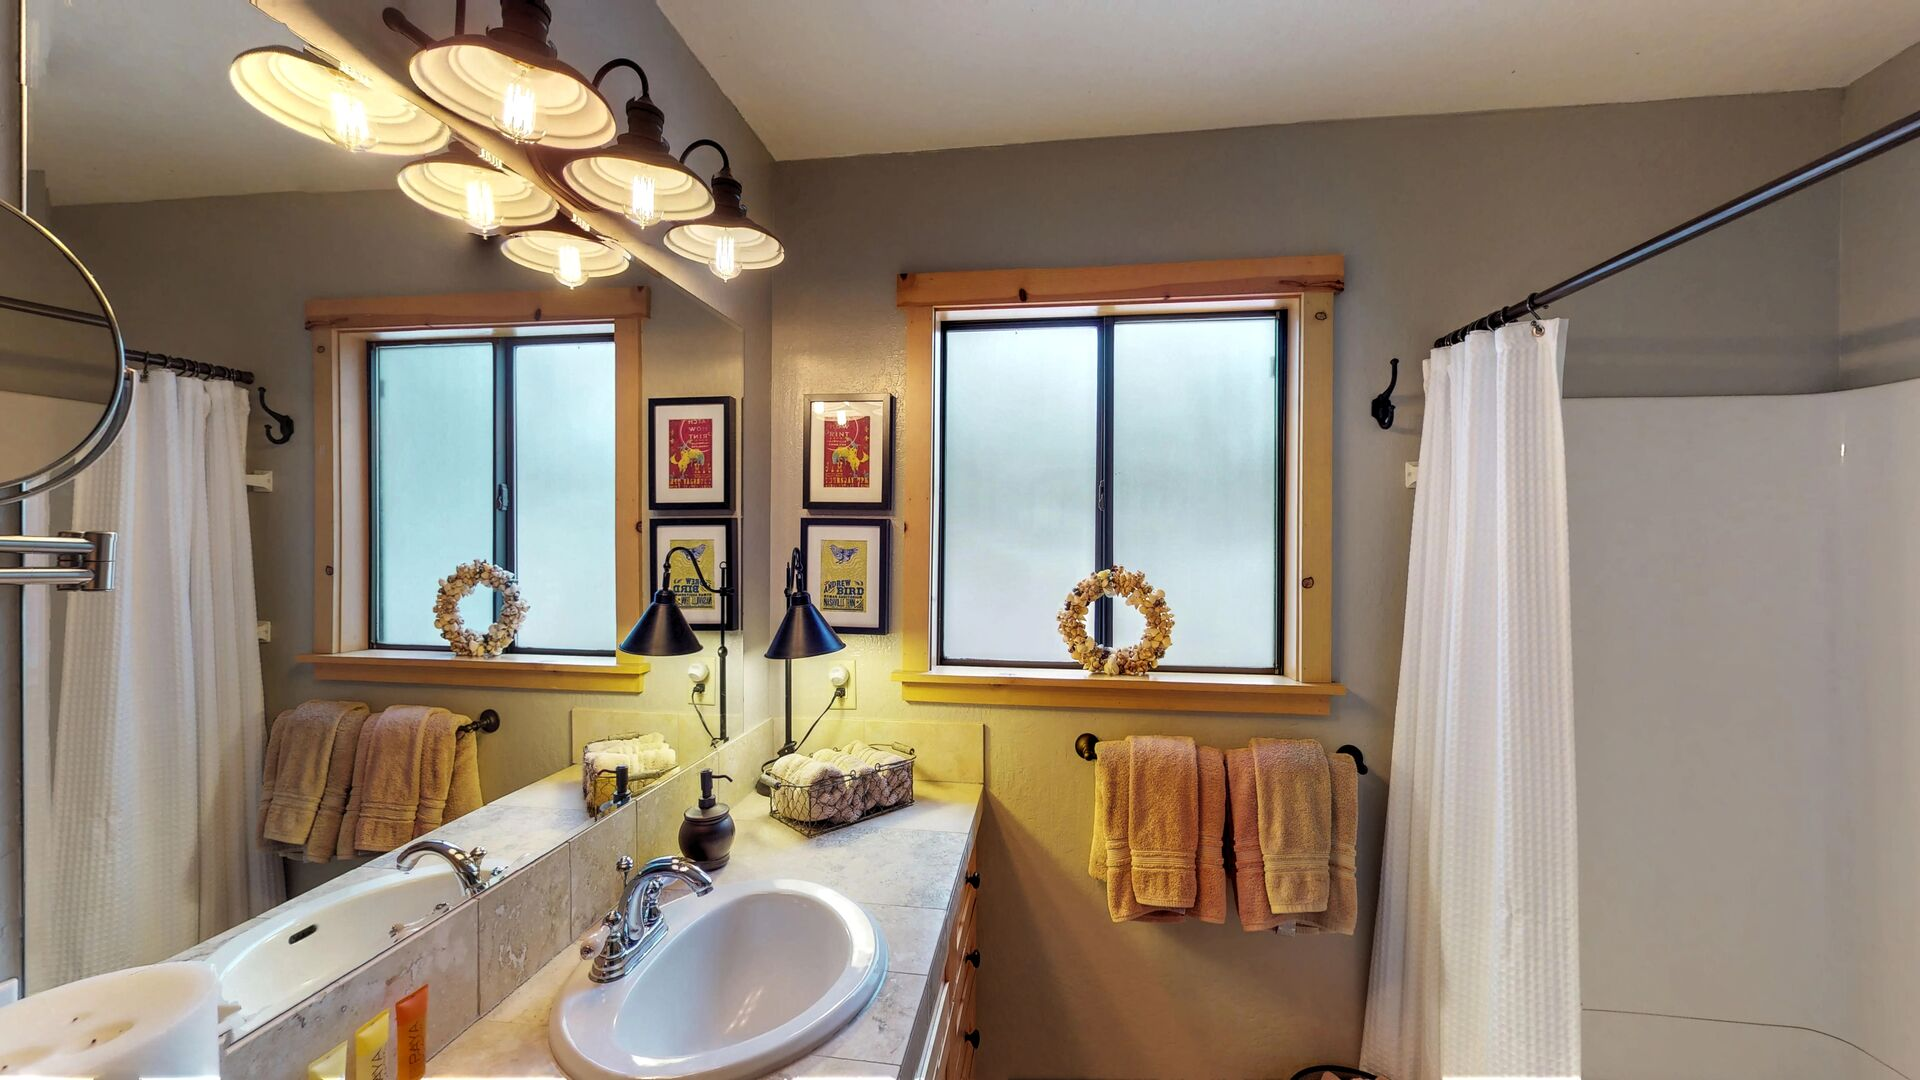 Full Bath with Frosted Window in our Vacation Rental in Lake Tahoe